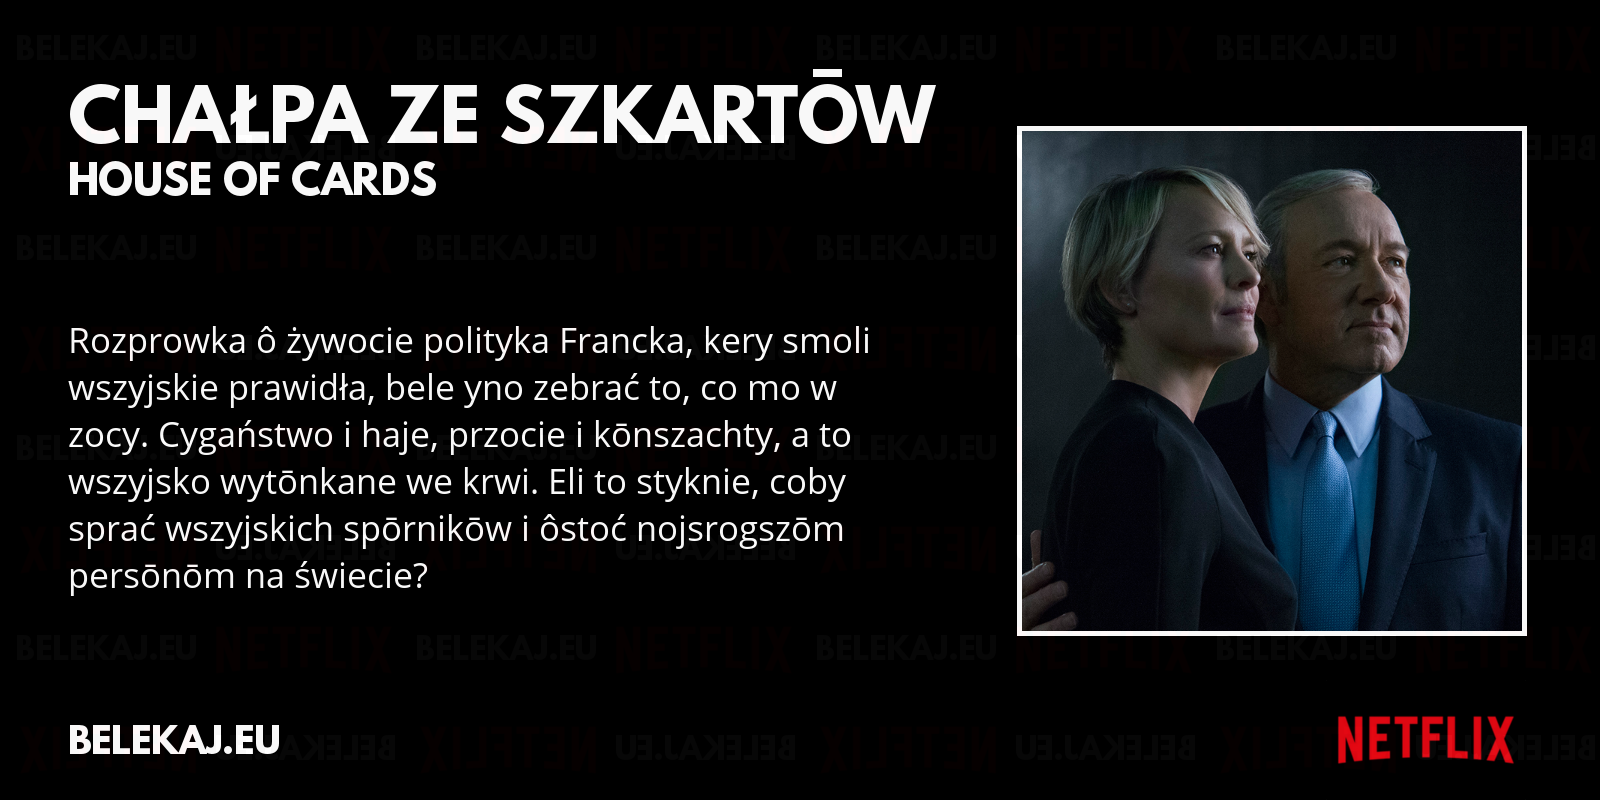 House of Cards - Netflix po śląsku